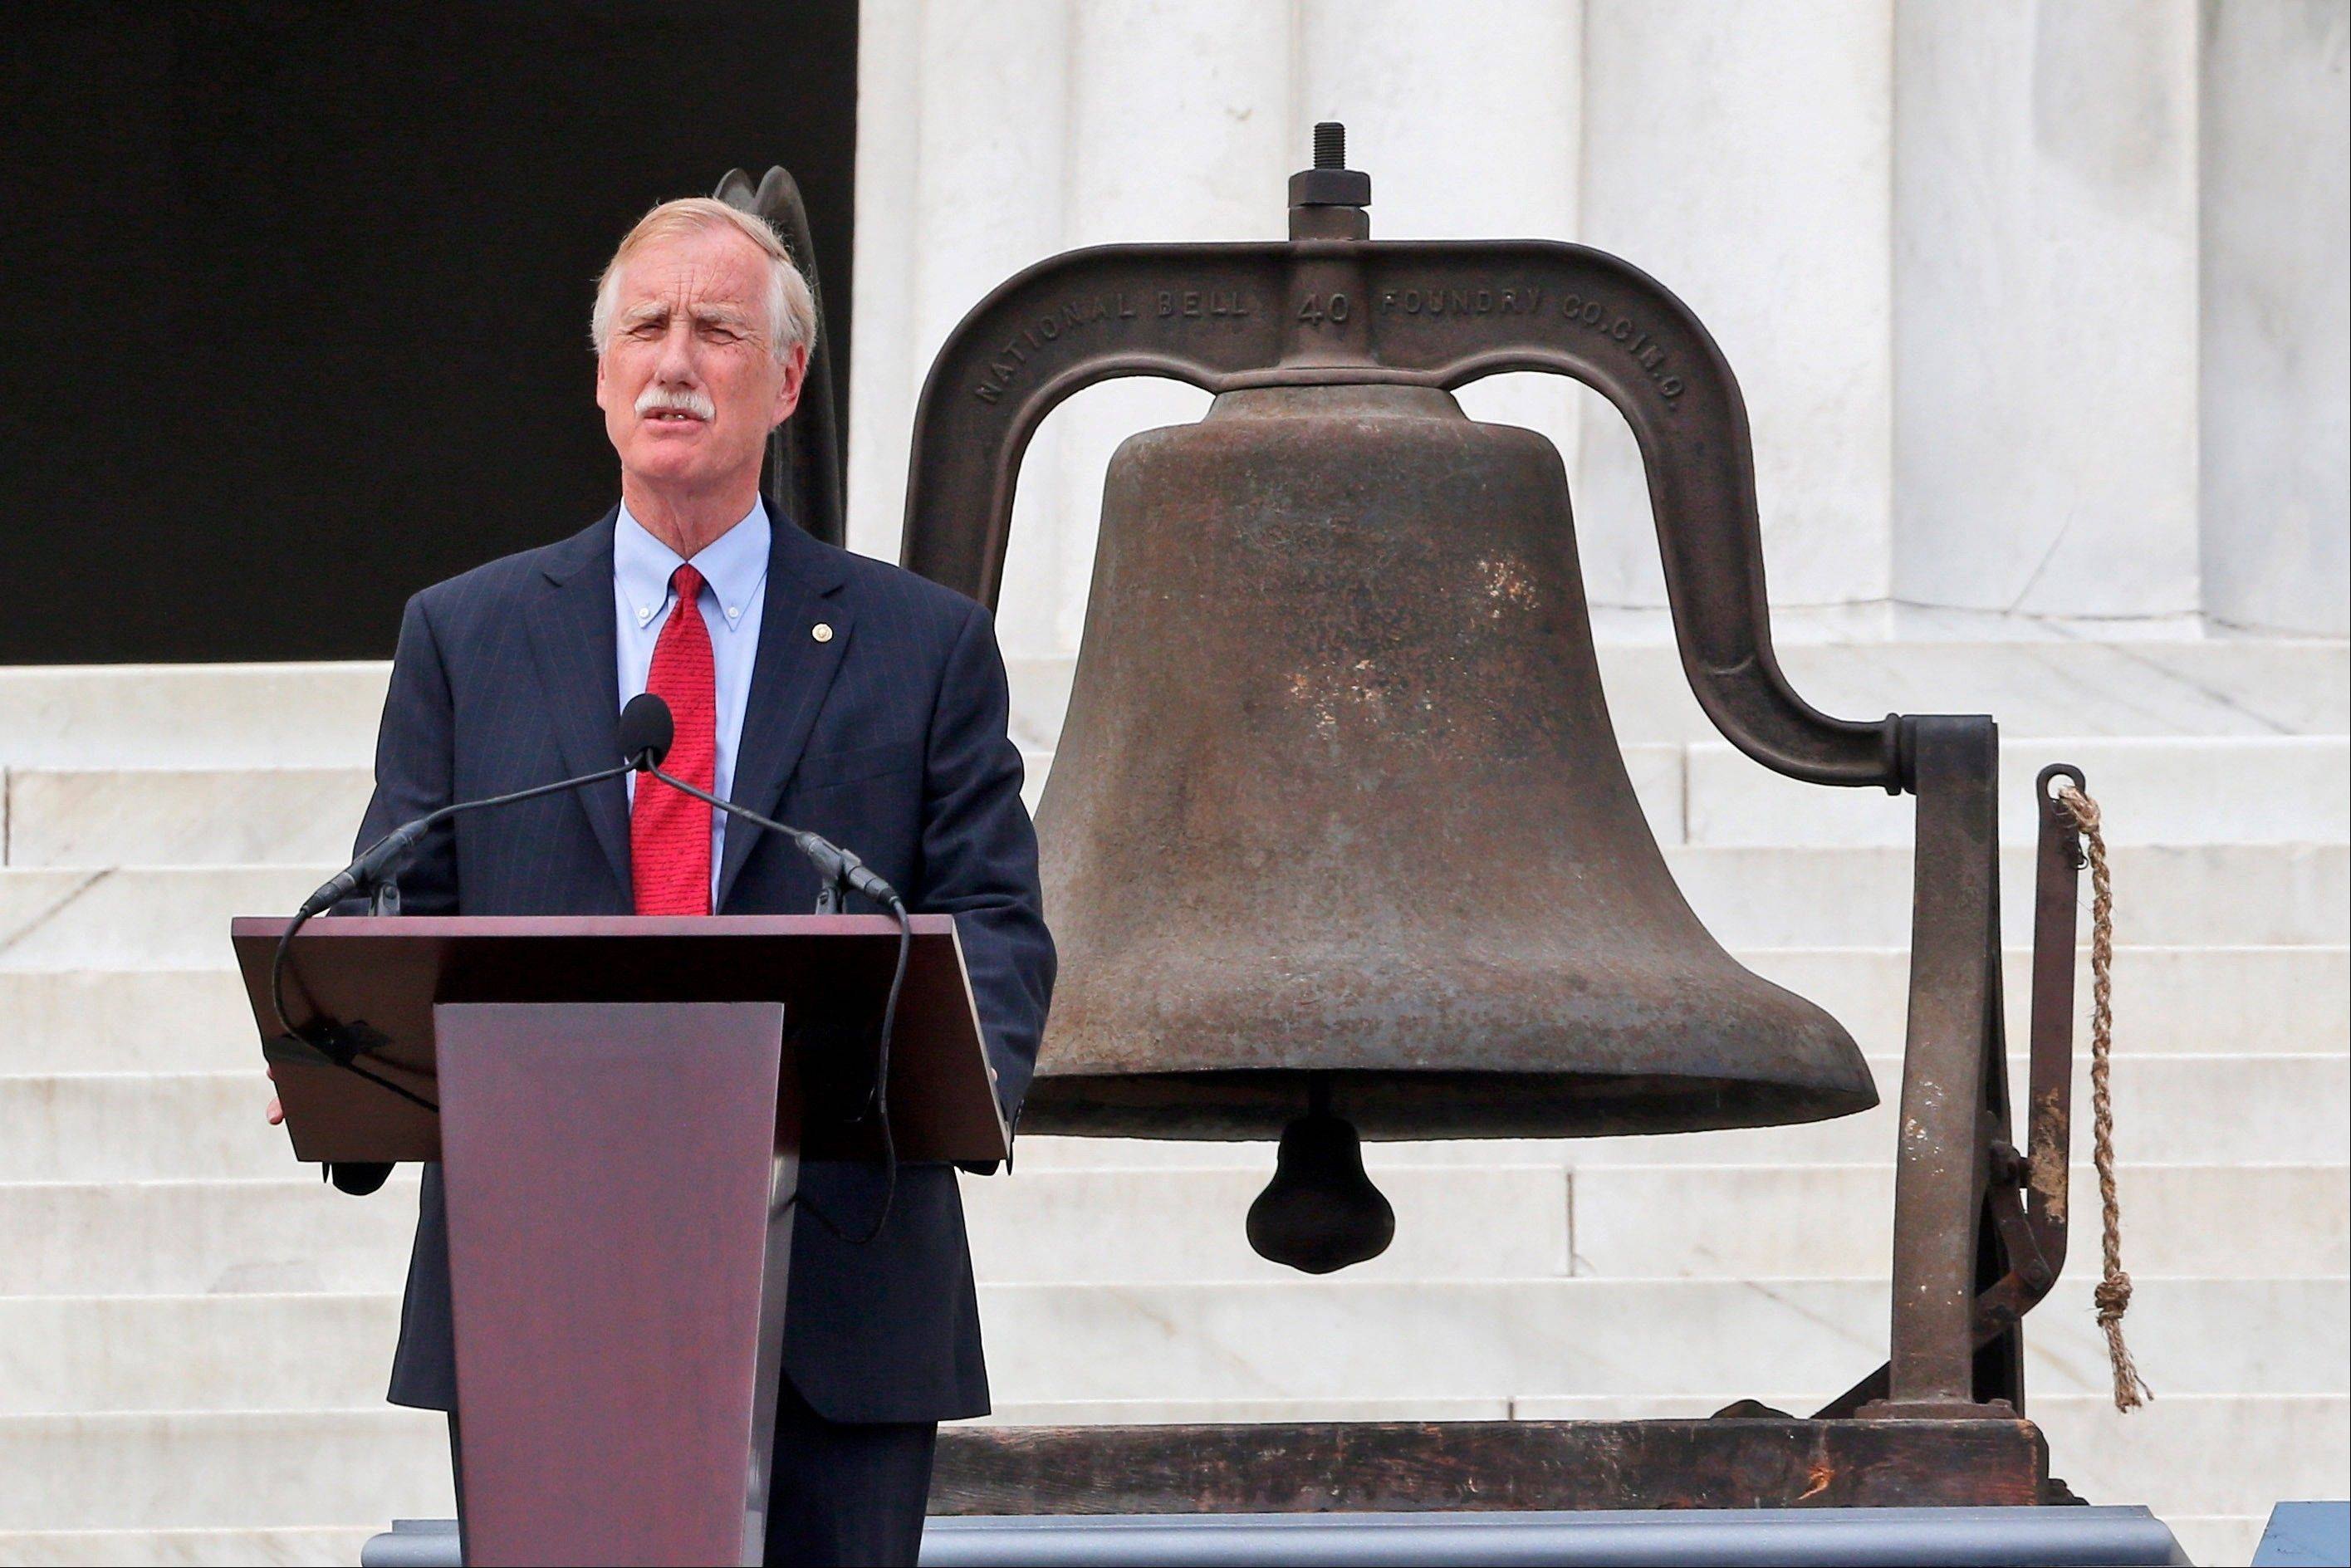 Sen. Angus King, I-Maine, speaks in front of the Lincoln Memorial in Washington. The bell at rear rang at the 16th St Baptist Church in Birmingham, Ala. which was bombed 18 days after the March On Washington killing four young girls.